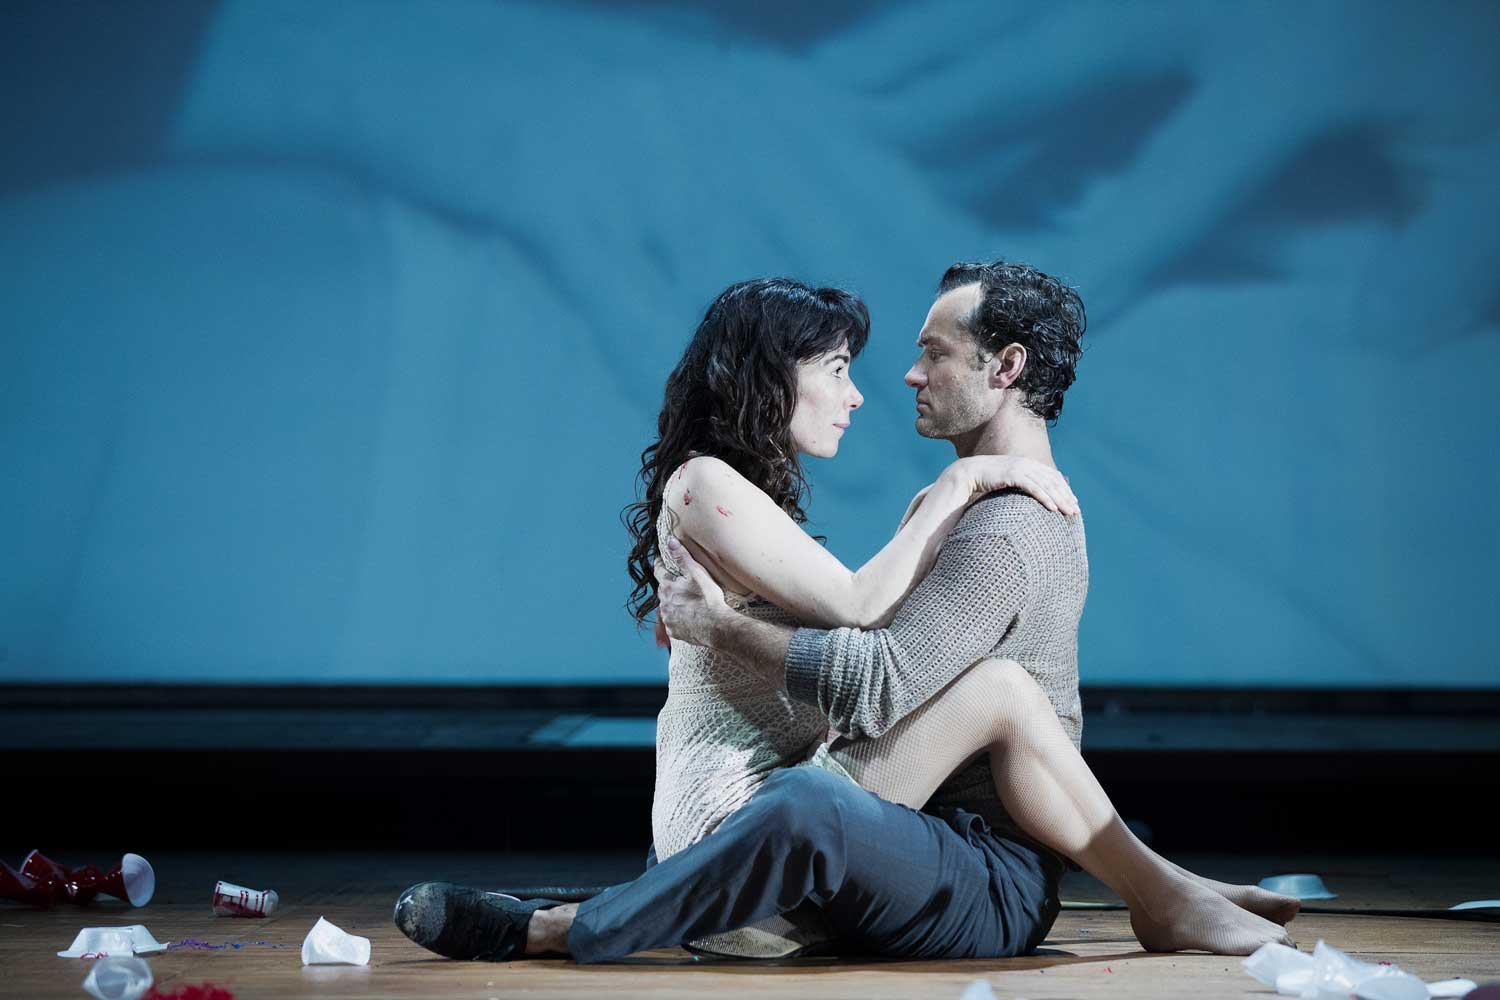 Halina Reijn and Jude Law in Obsession at the Barbican Theatre. Photo by Jan Versweyveld.